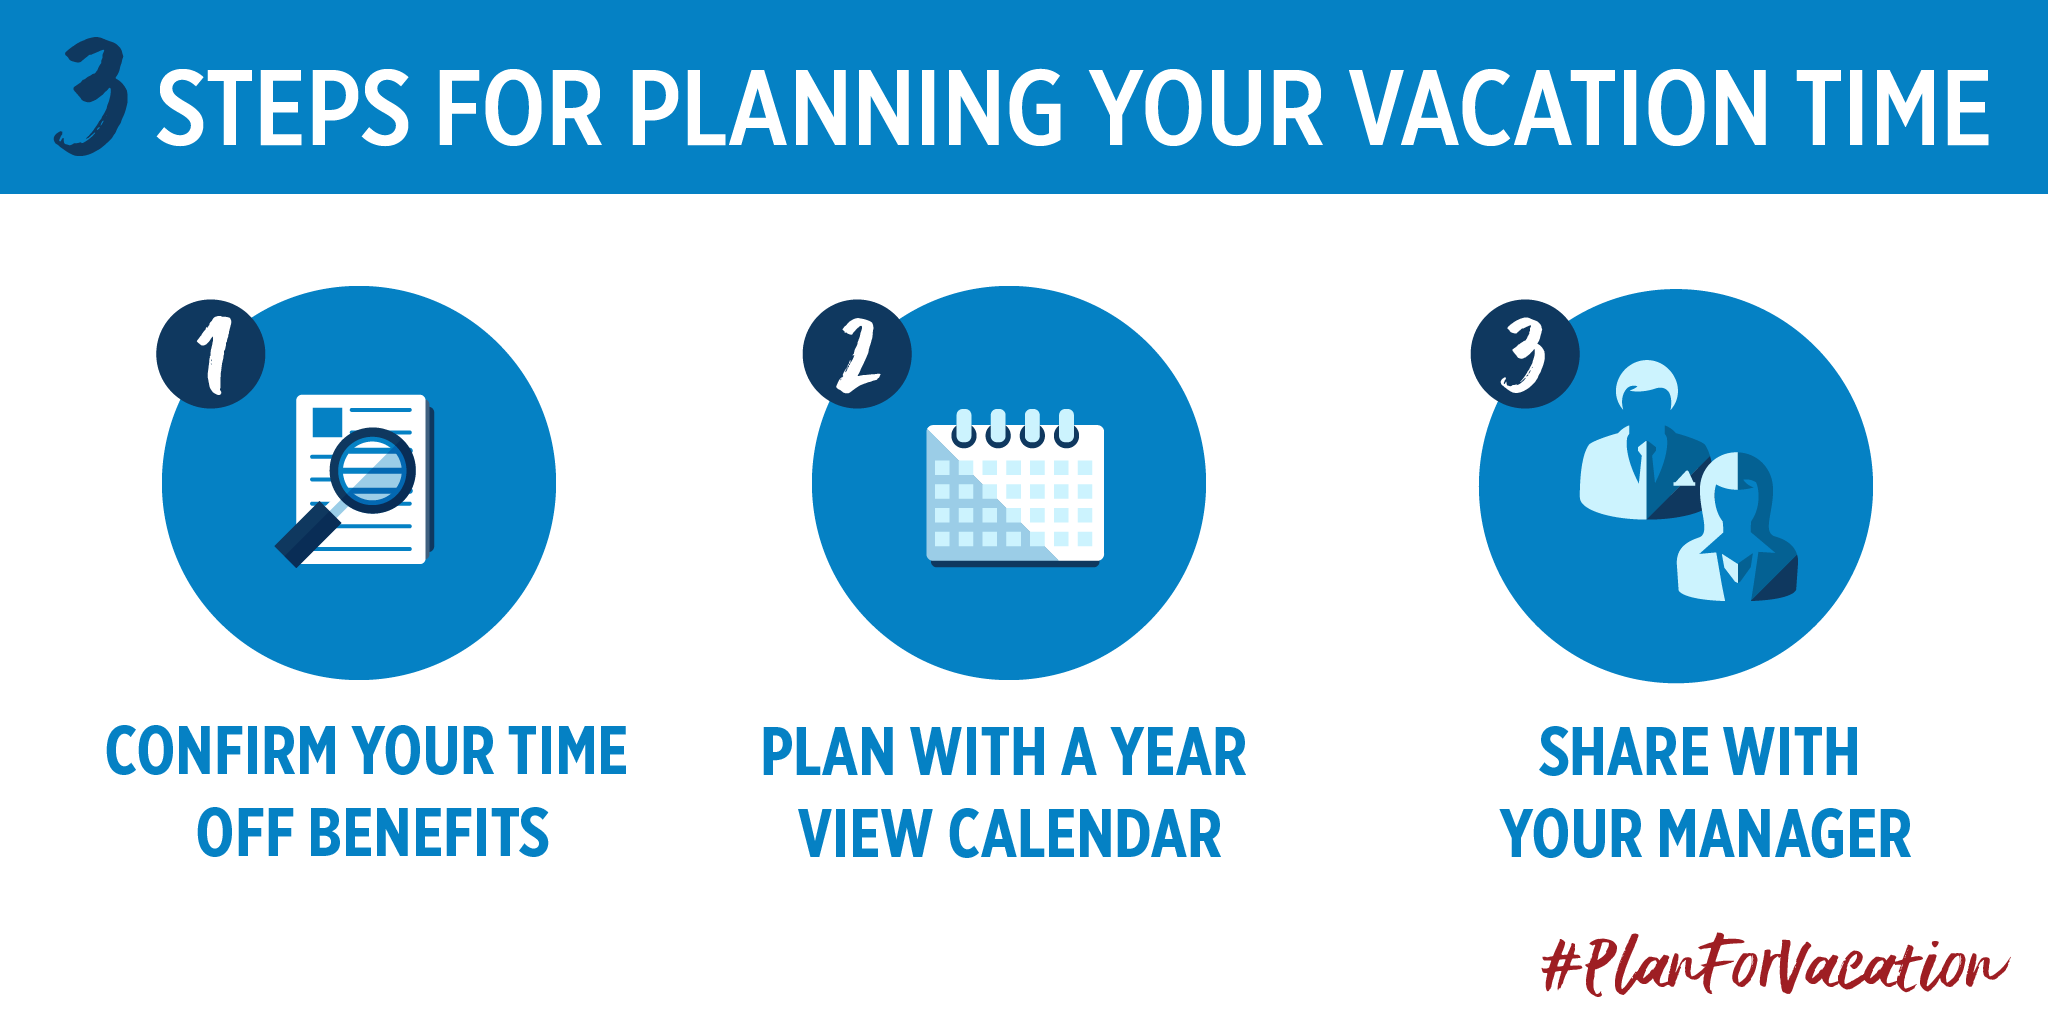 Three Steps for Planning Your Vacation Time